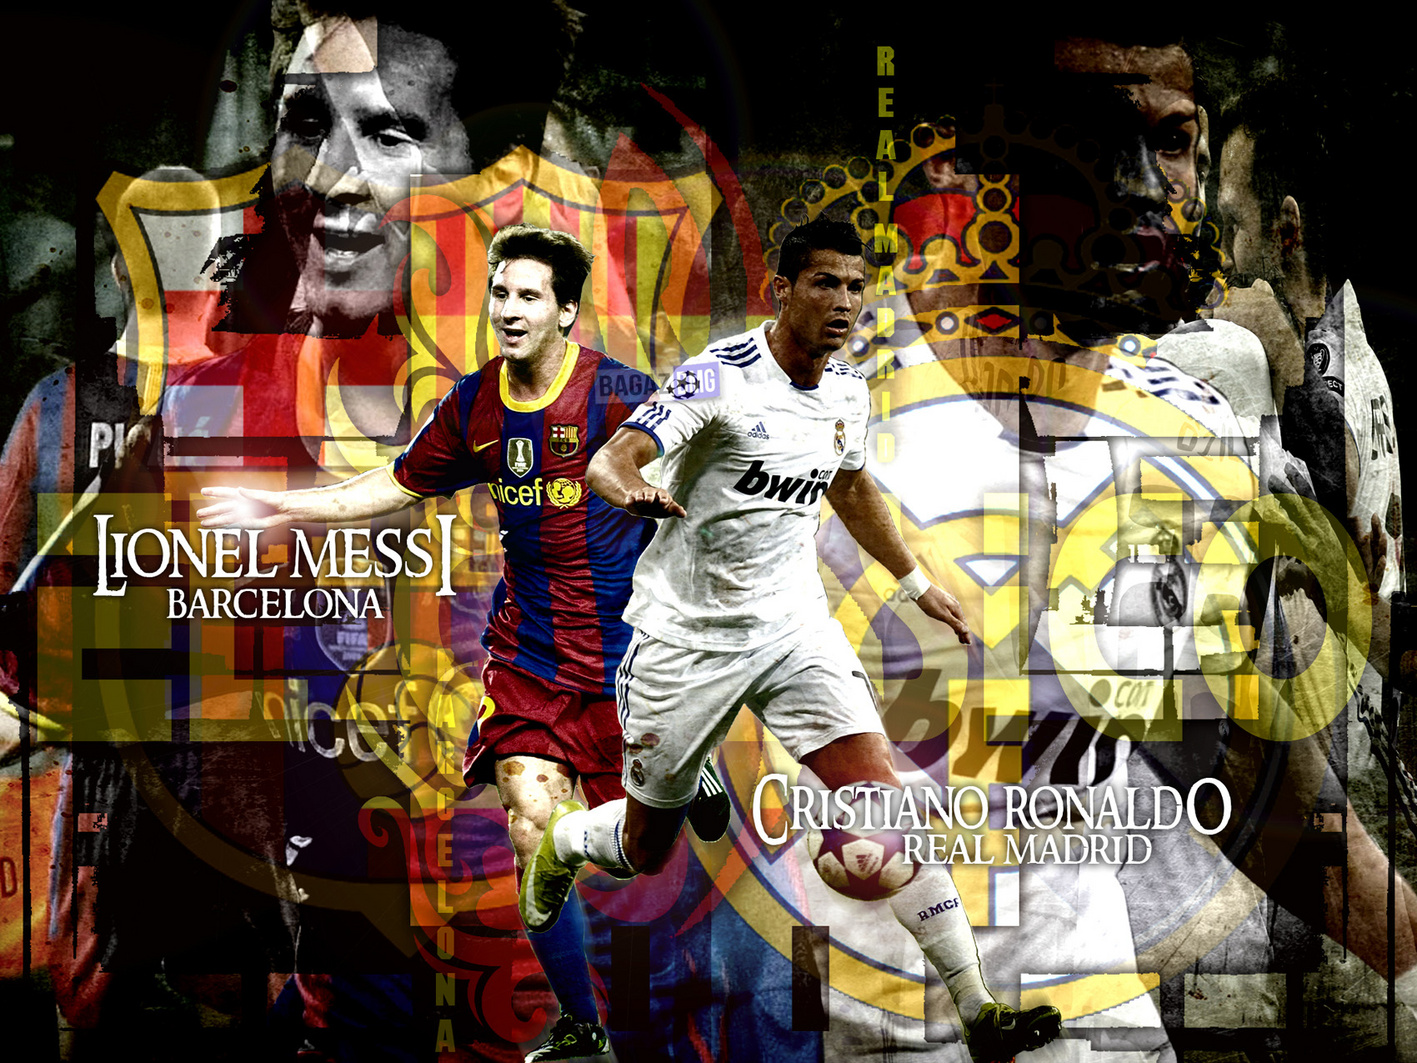 Cristiano Ronaldo Vs Lionel Messi Wallpapers 2012 2013